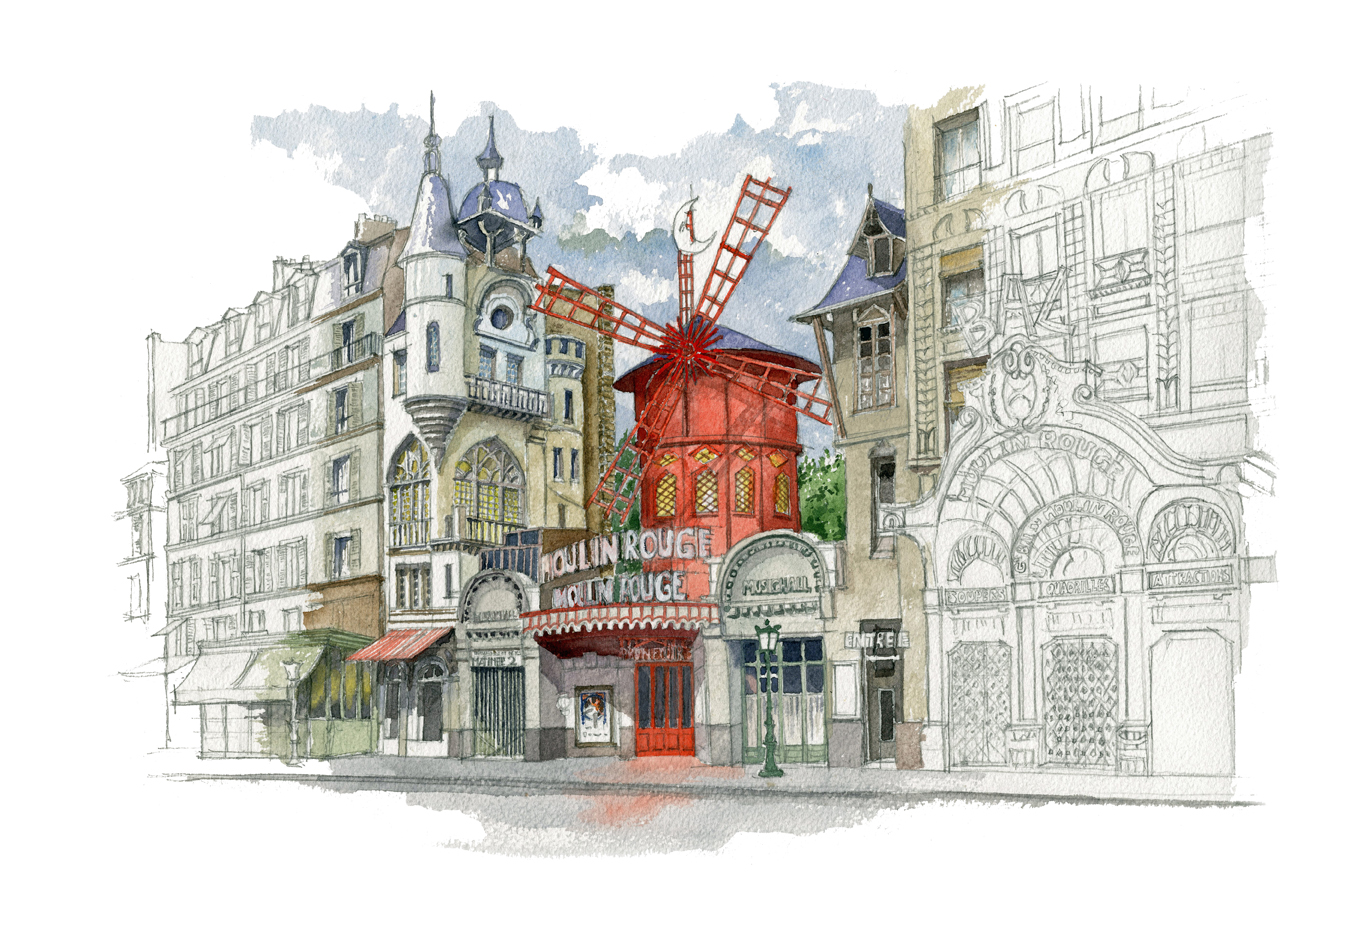 00-Le moulin rouge